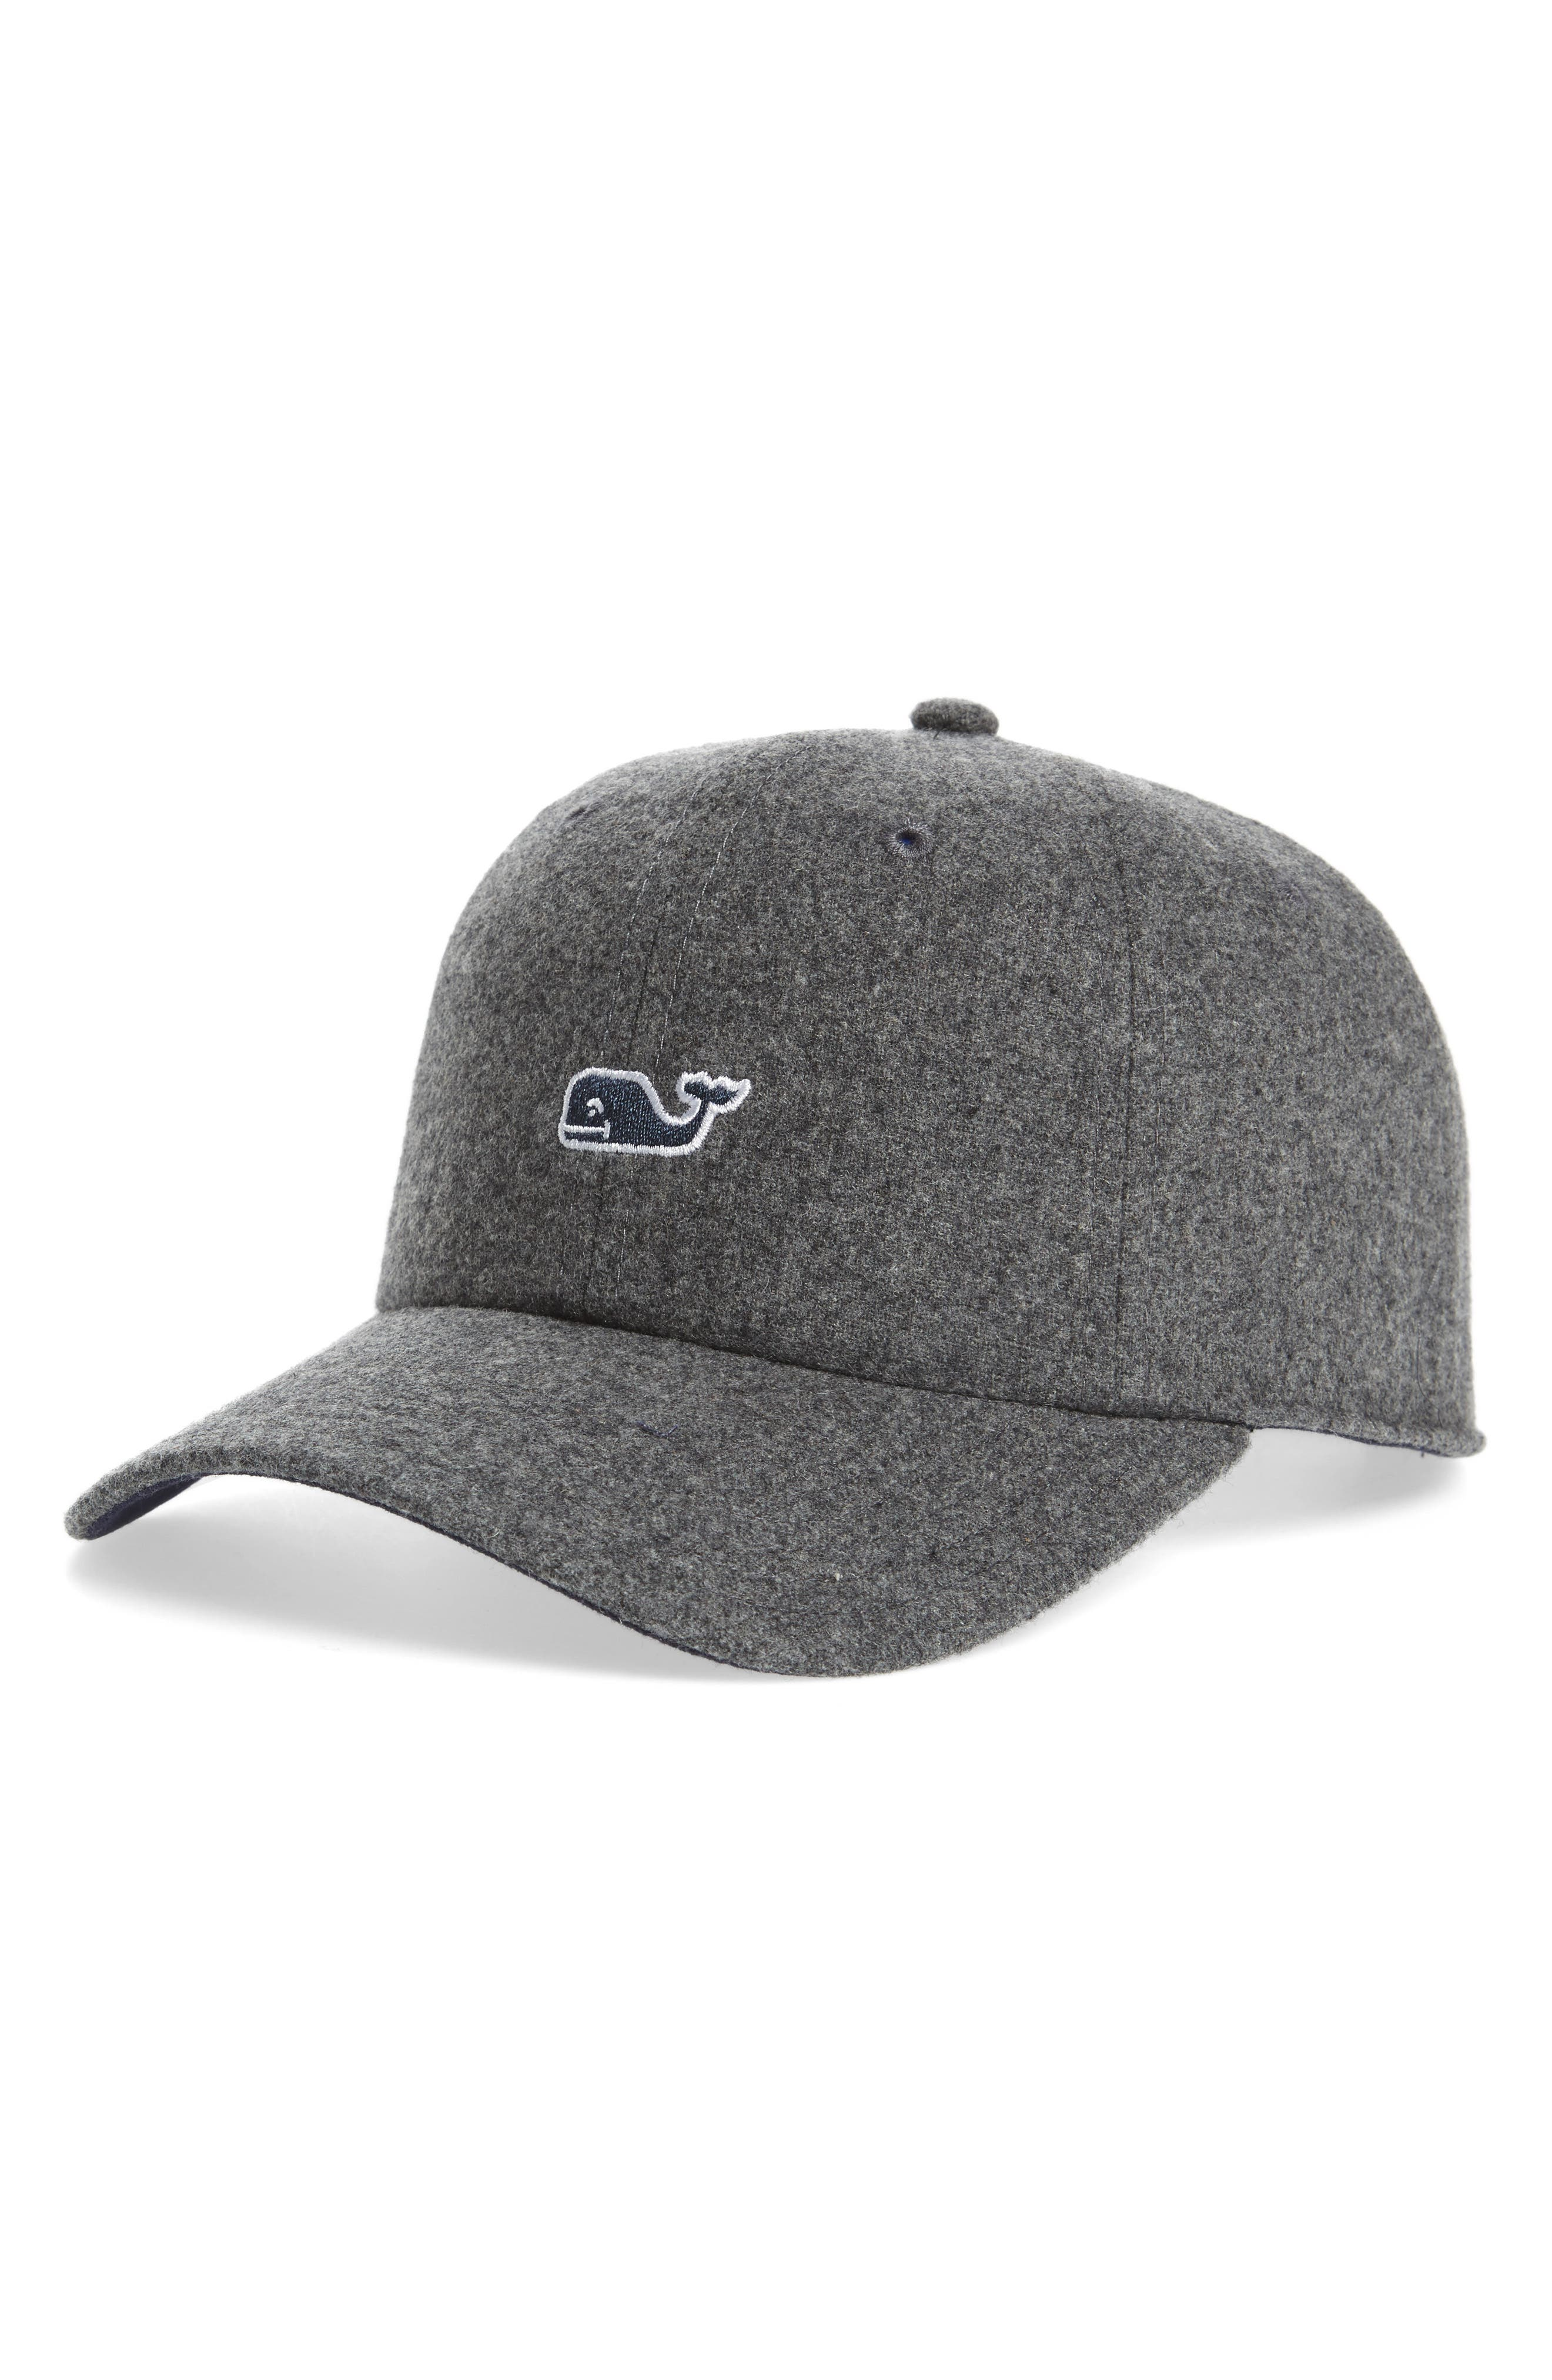 vineyard vines Wool Blend Baseball Cap